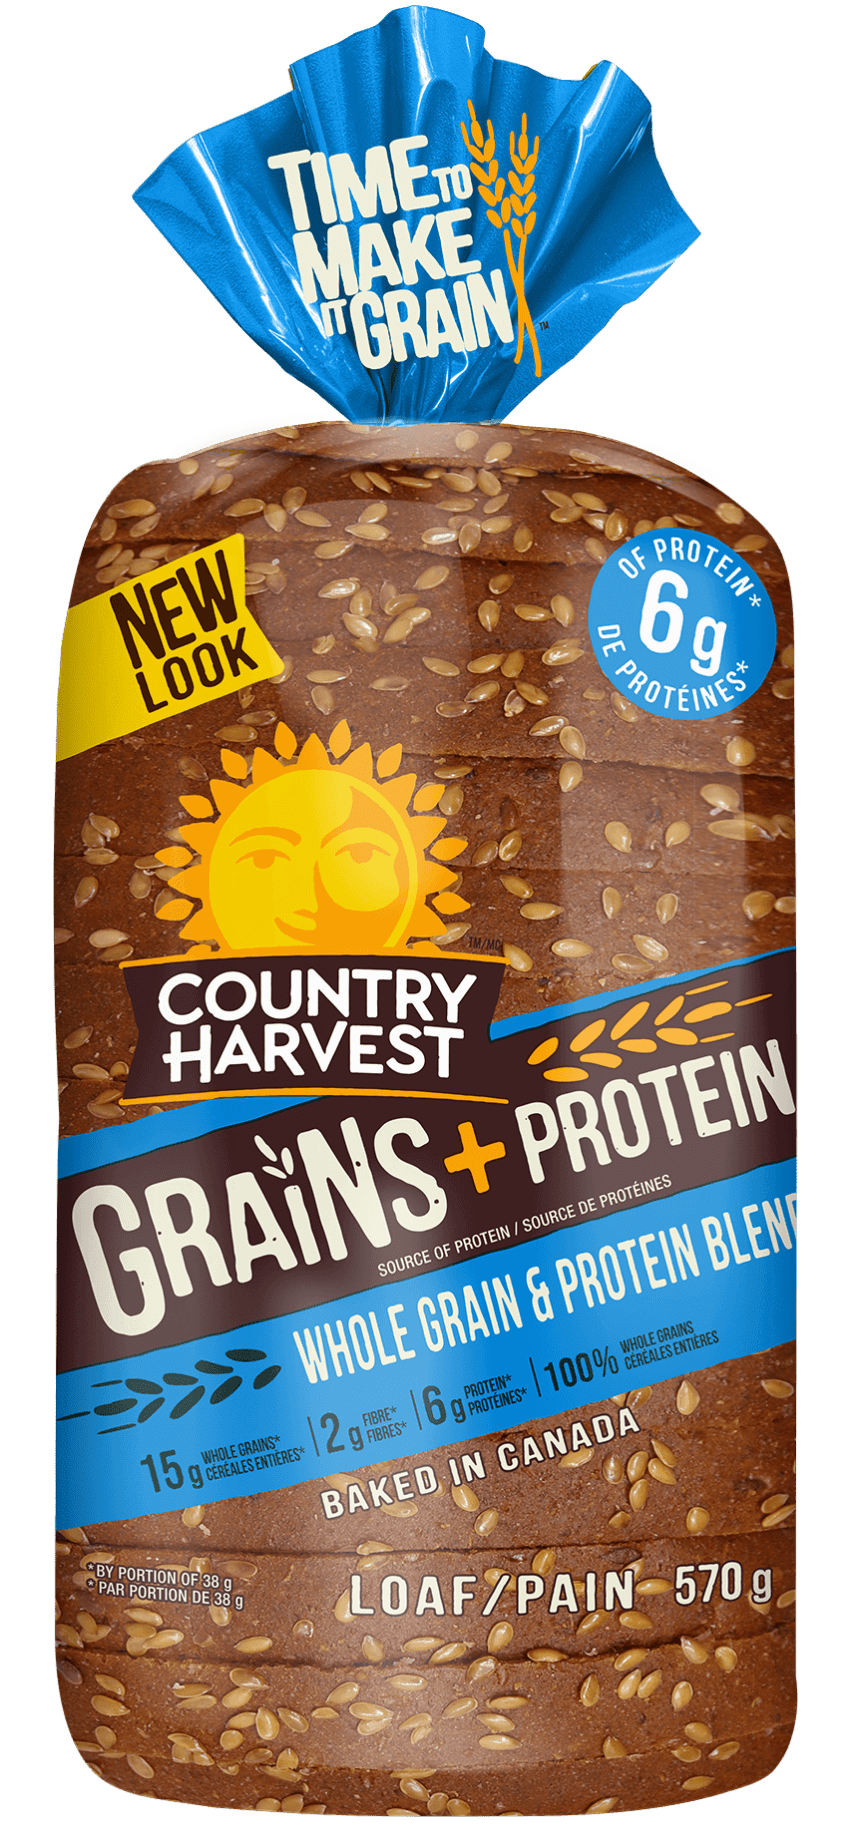 Country-Harvest-Whole-Grains-Protein-ENG-min